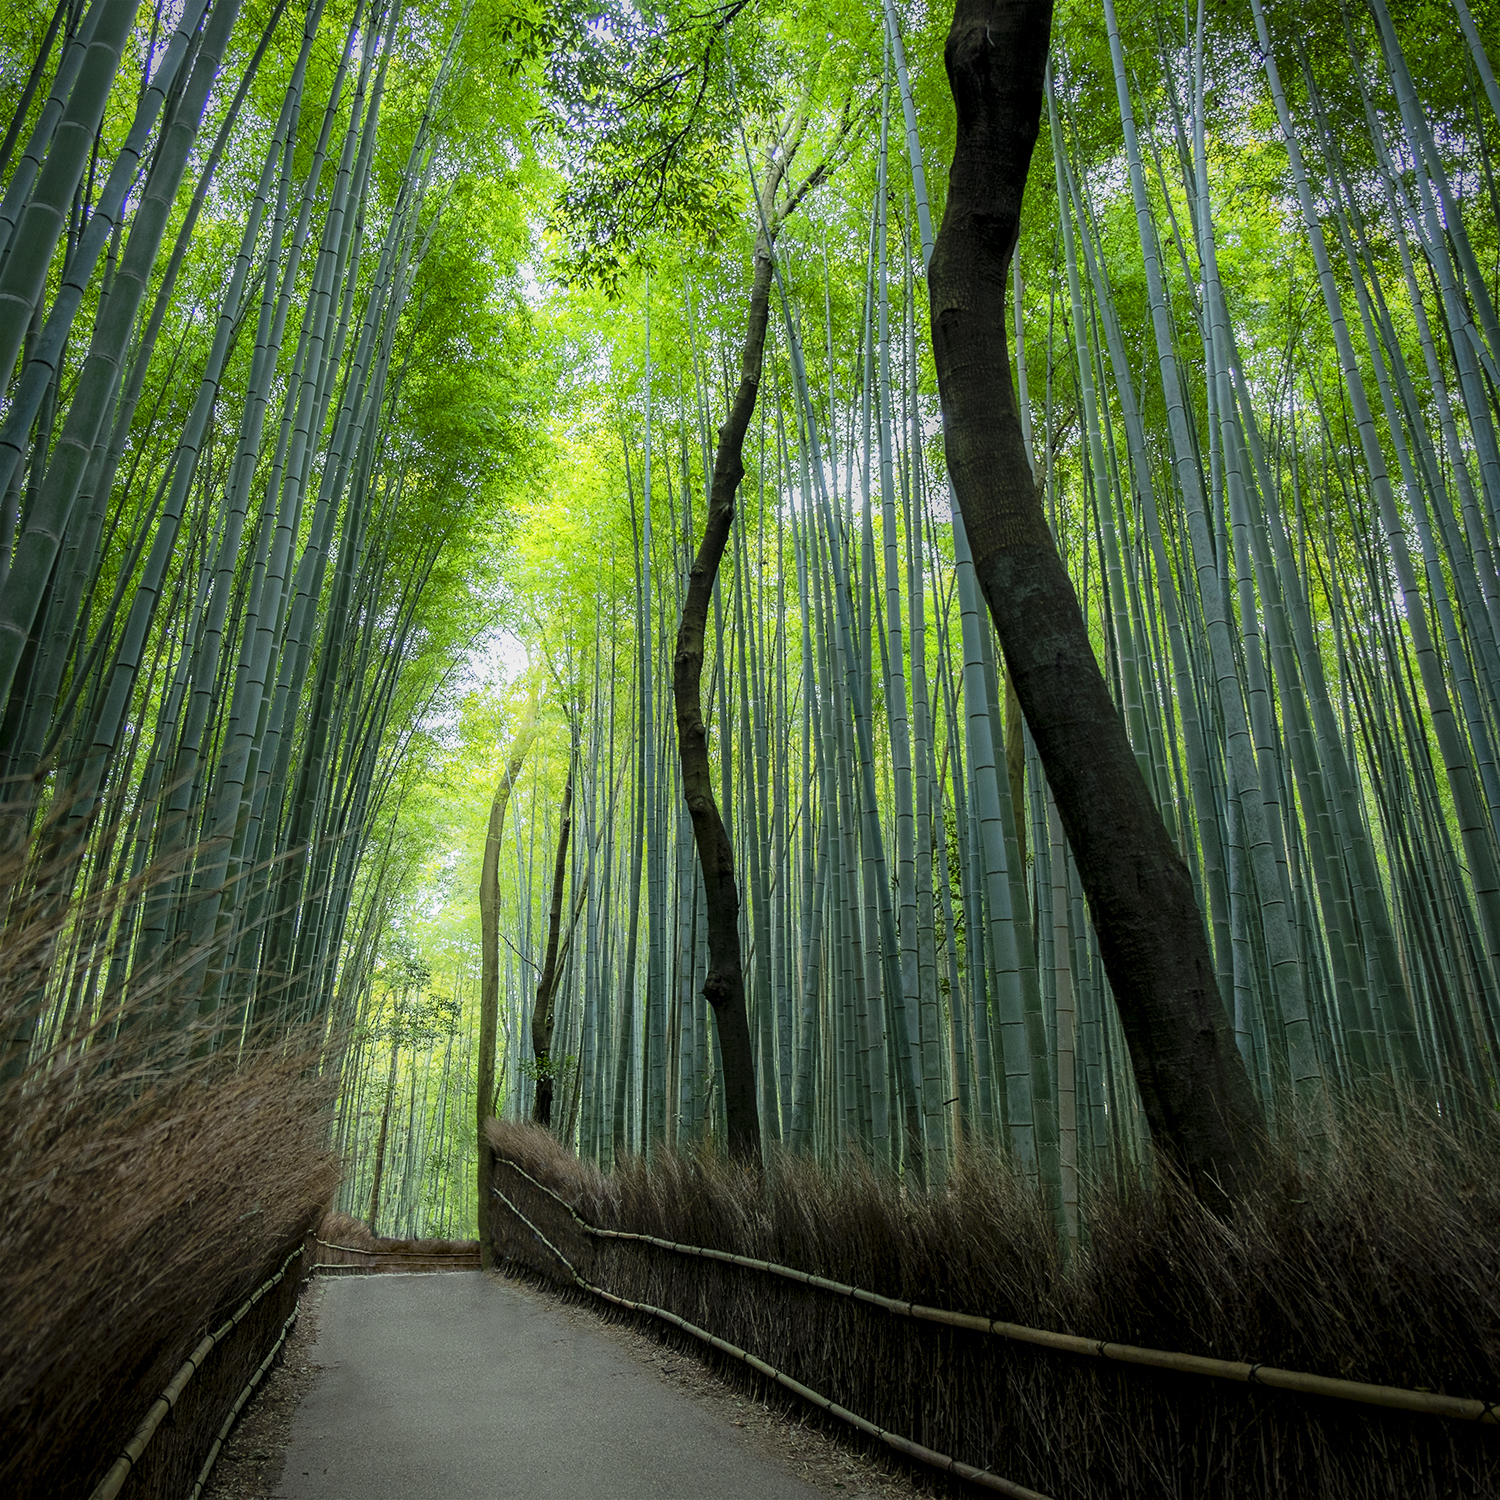 One of many paths through the bamboo groves.